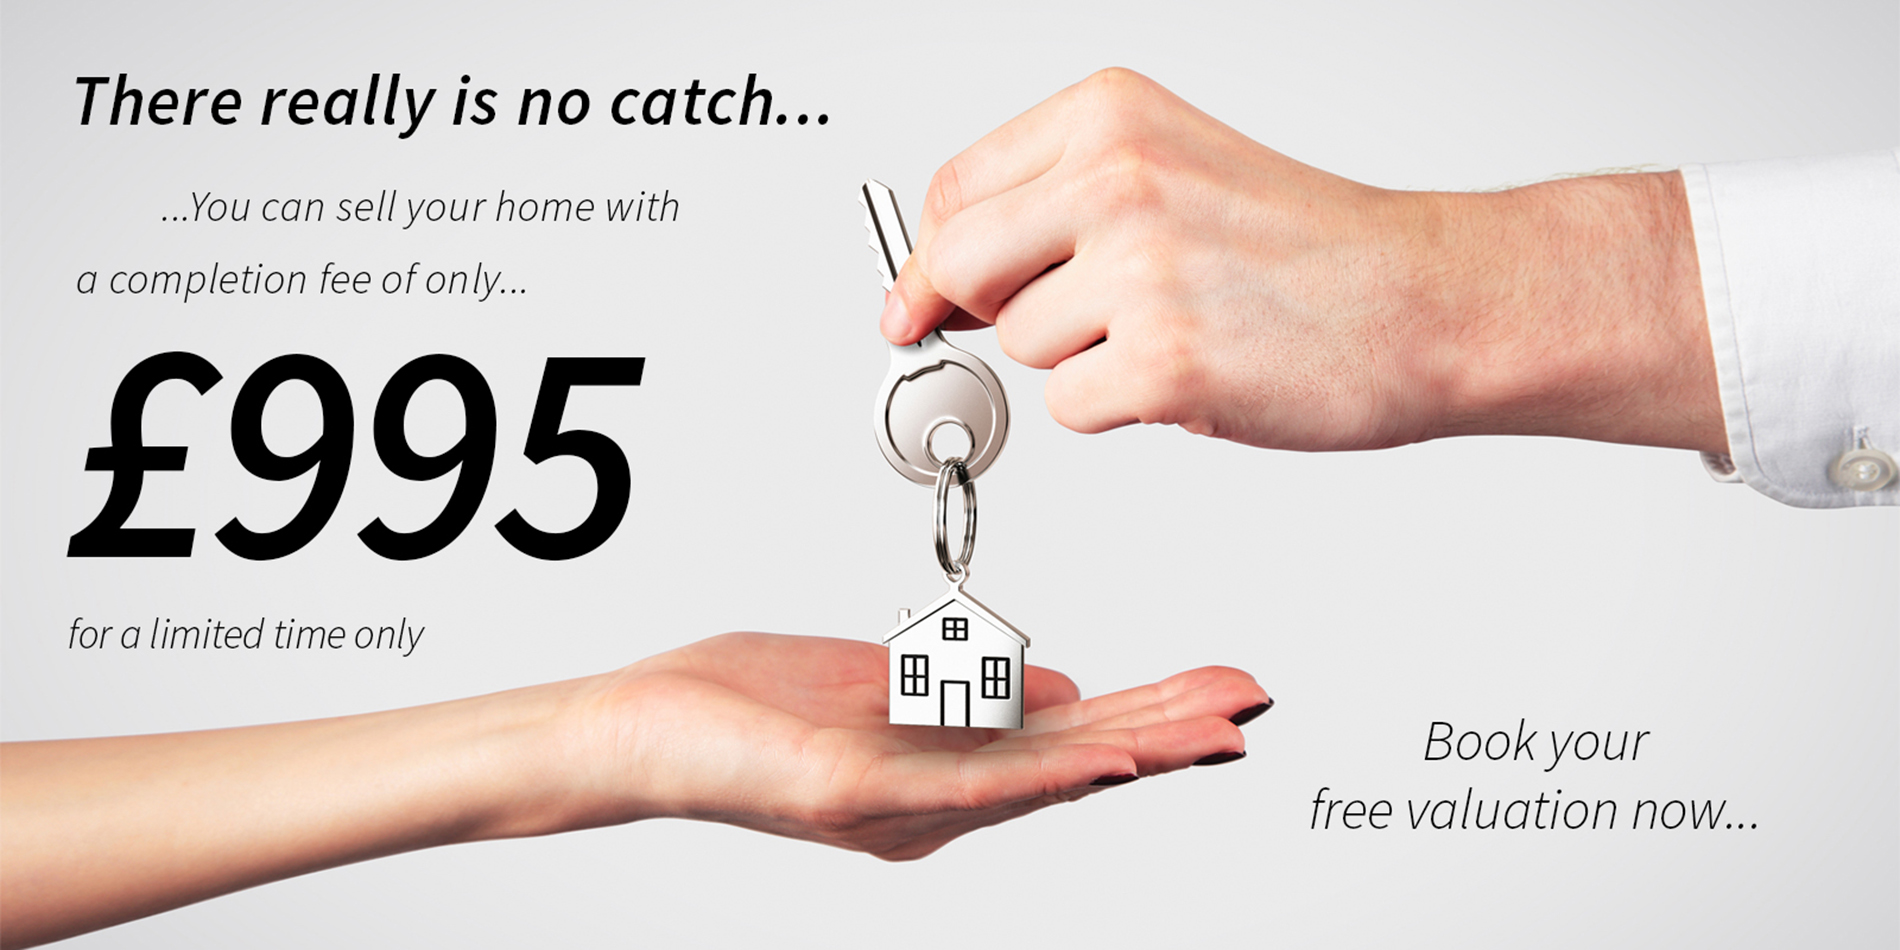 Sales Banner - You can sell your home with a completion fee of only £995 for a limited time only.